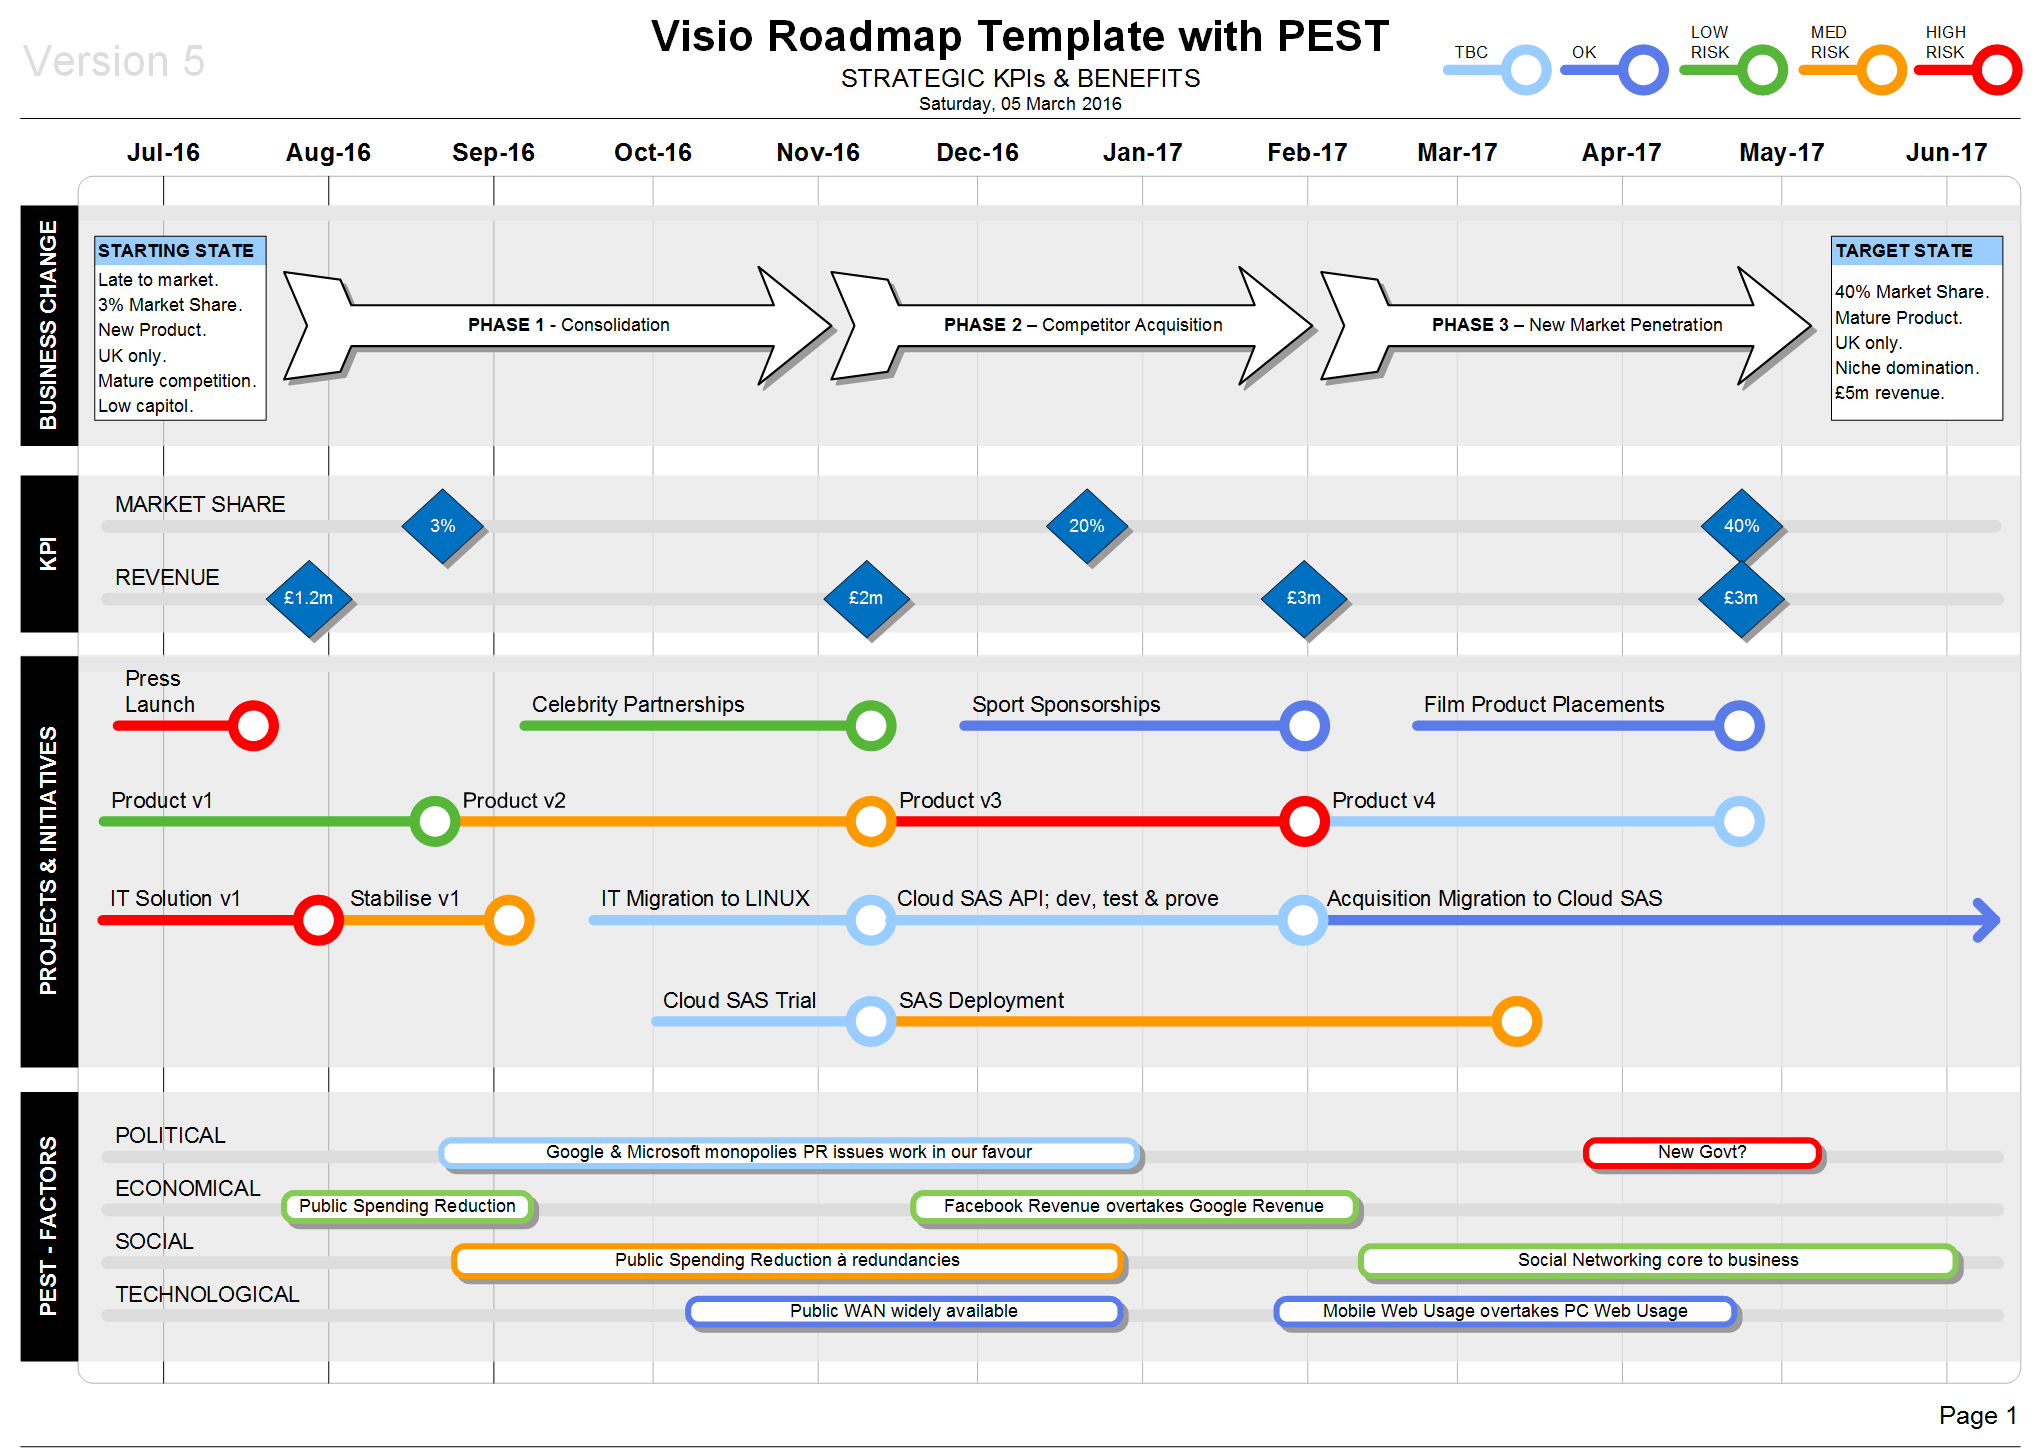 Visio Roadmap PEST Template Strategic KPIs & Benefits